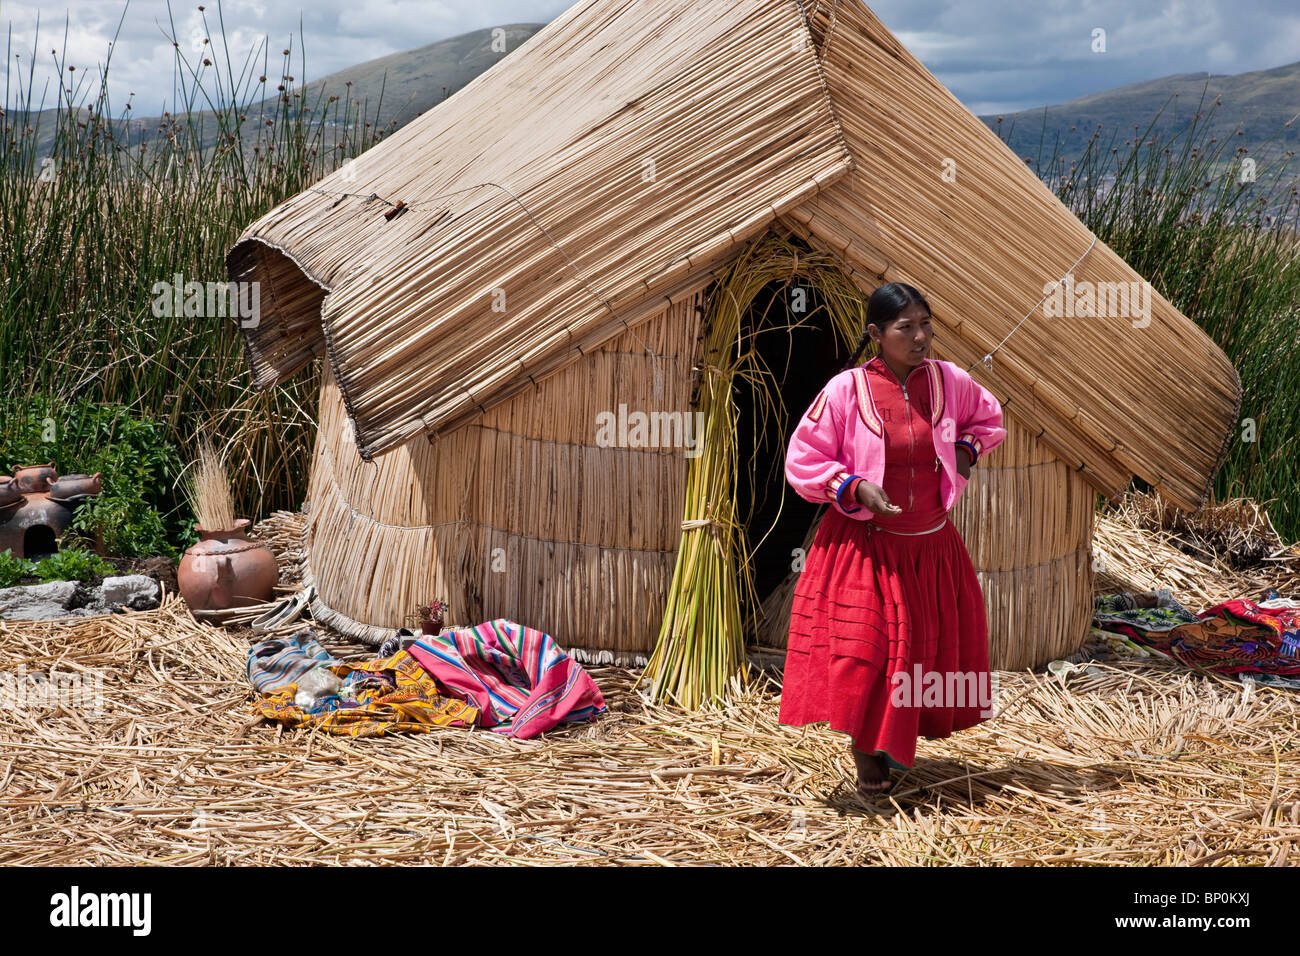 Peru, A girl from Uros outside her reed home on one of the unique floating islands of Lake Titicaca. - Stock Image